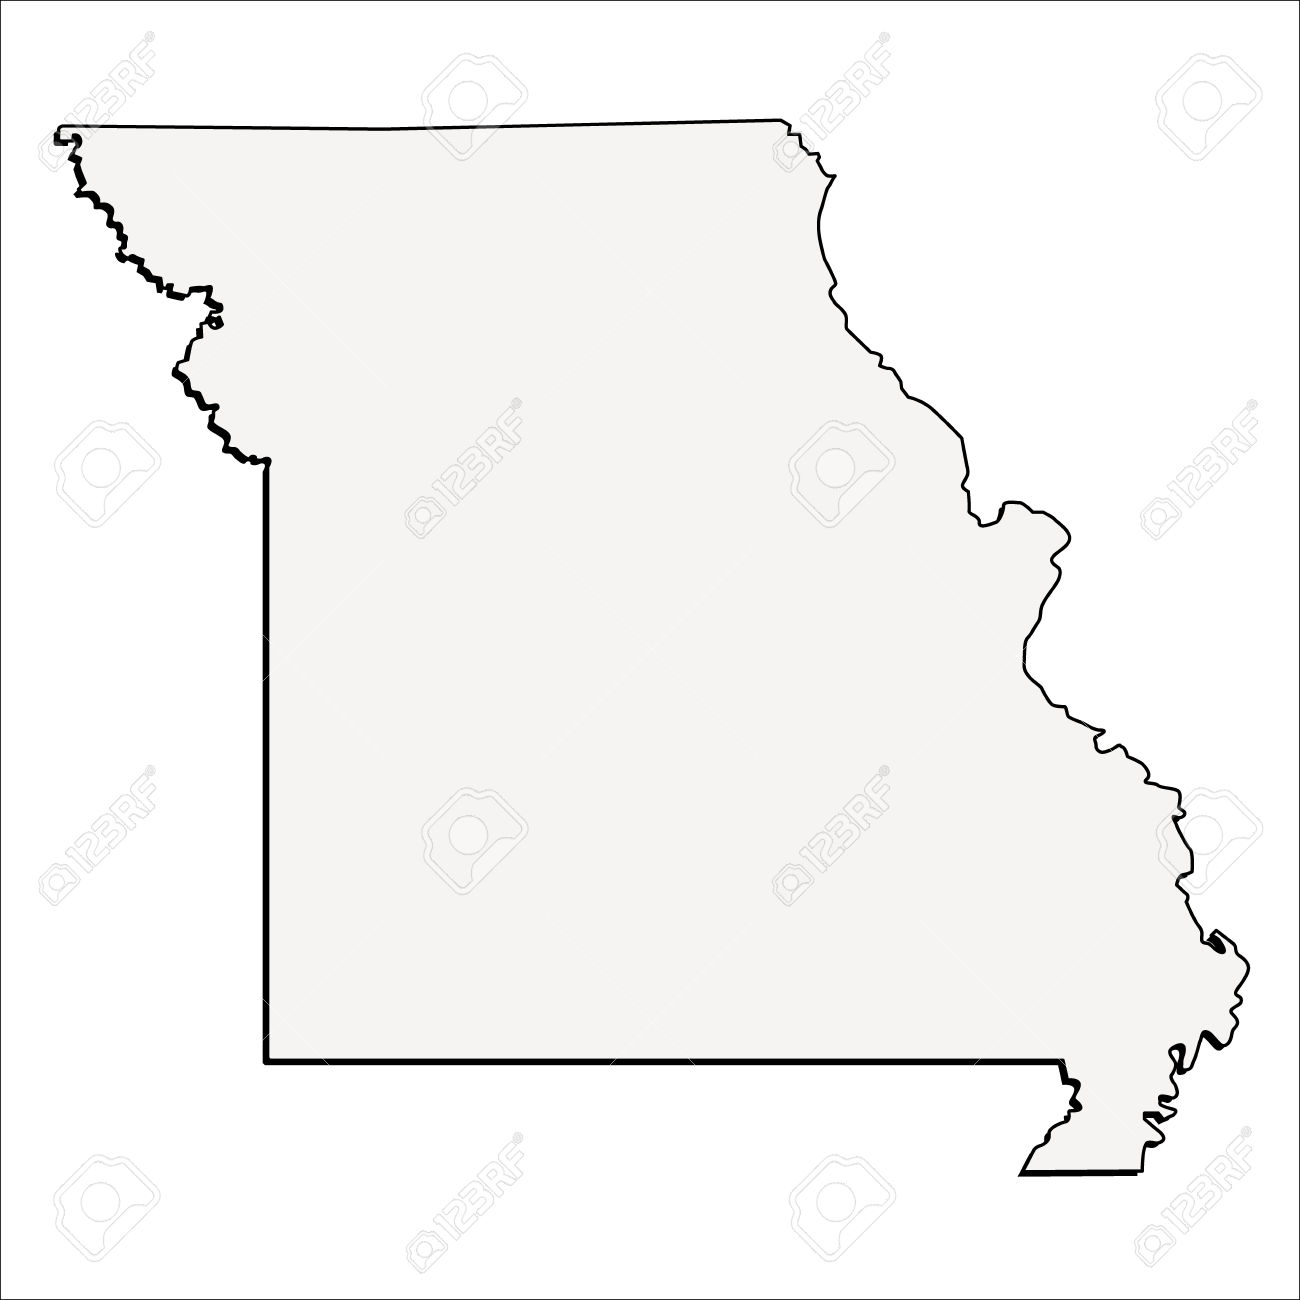 Missouri Map Vector Stock Vector Illustration And Royalty Free.